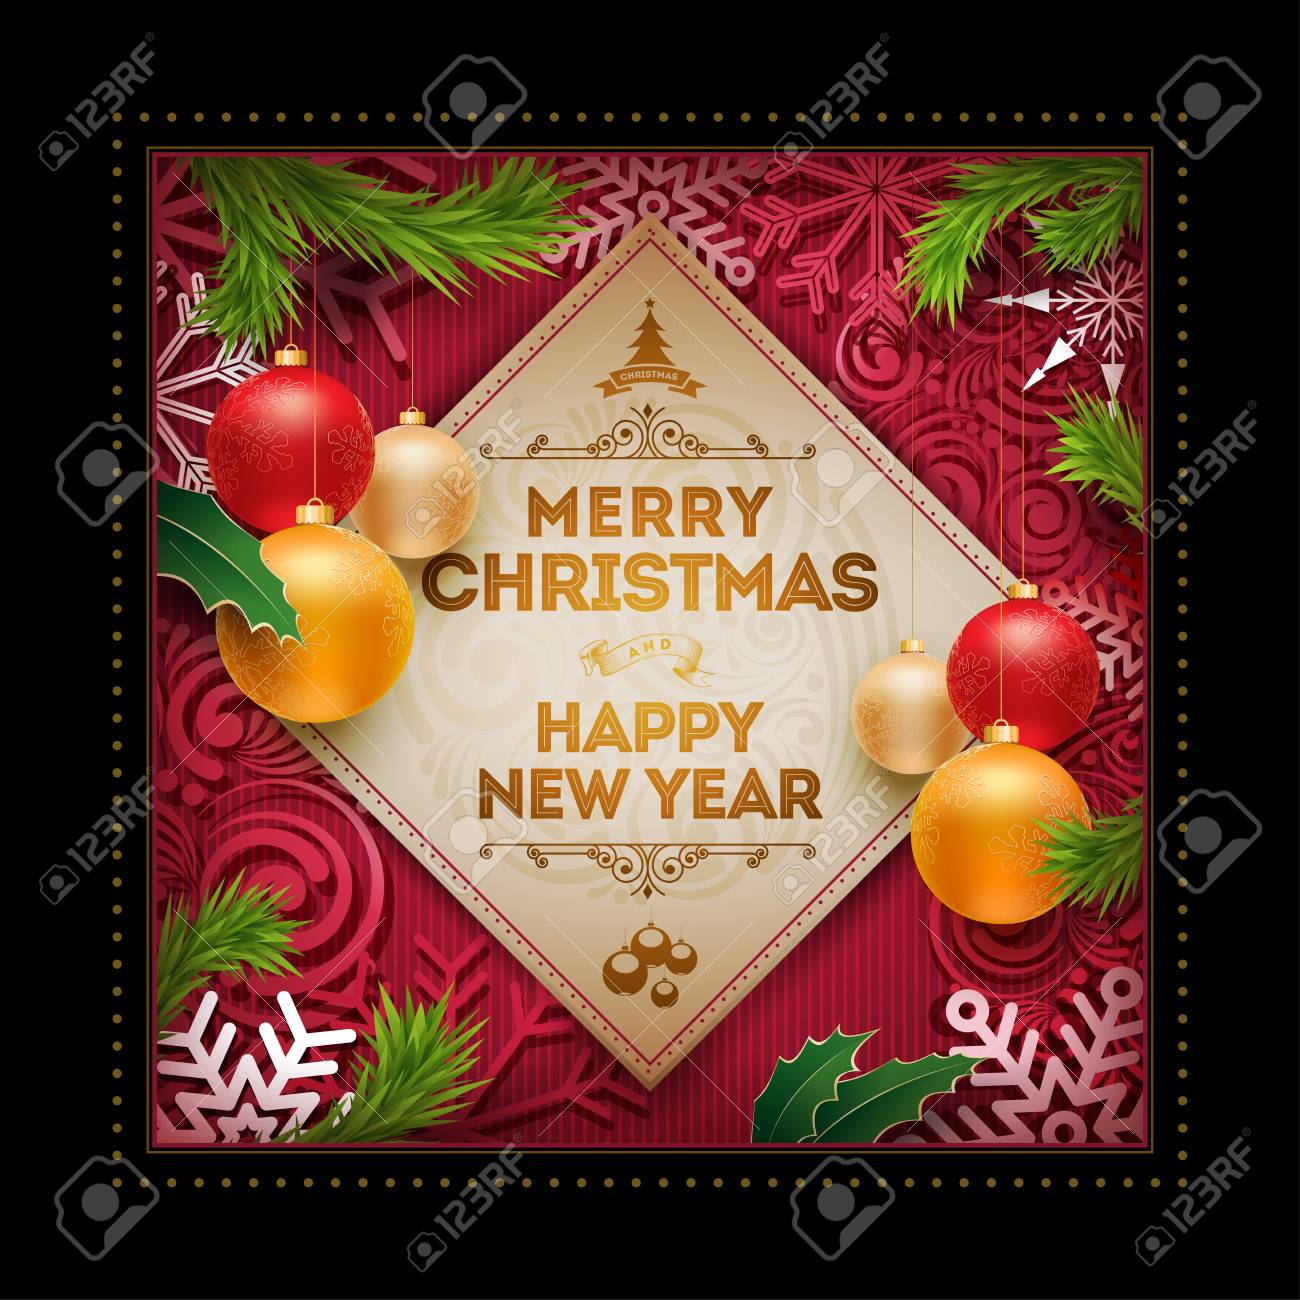 Christmas And New Year Wishes.Vector Christmas And New Year Wishes On Greeting Card Christmas